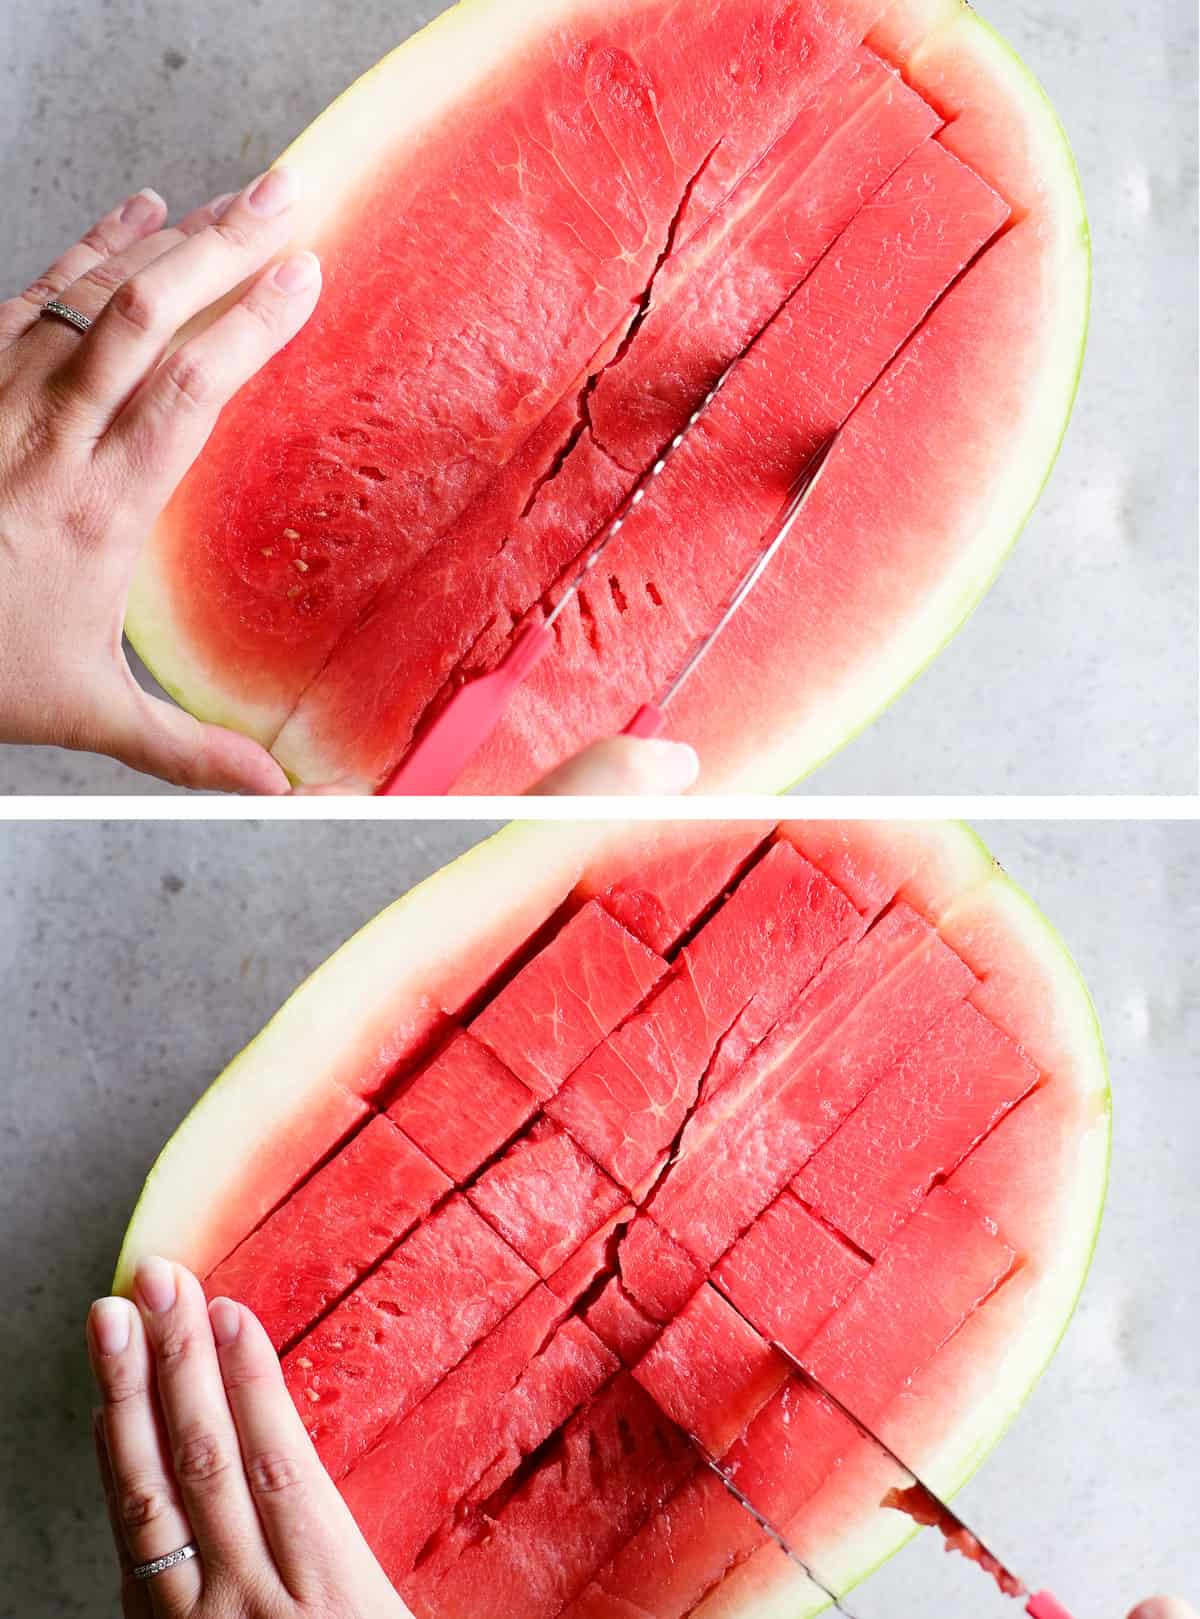 using watermelon tongs to cut a watermelon